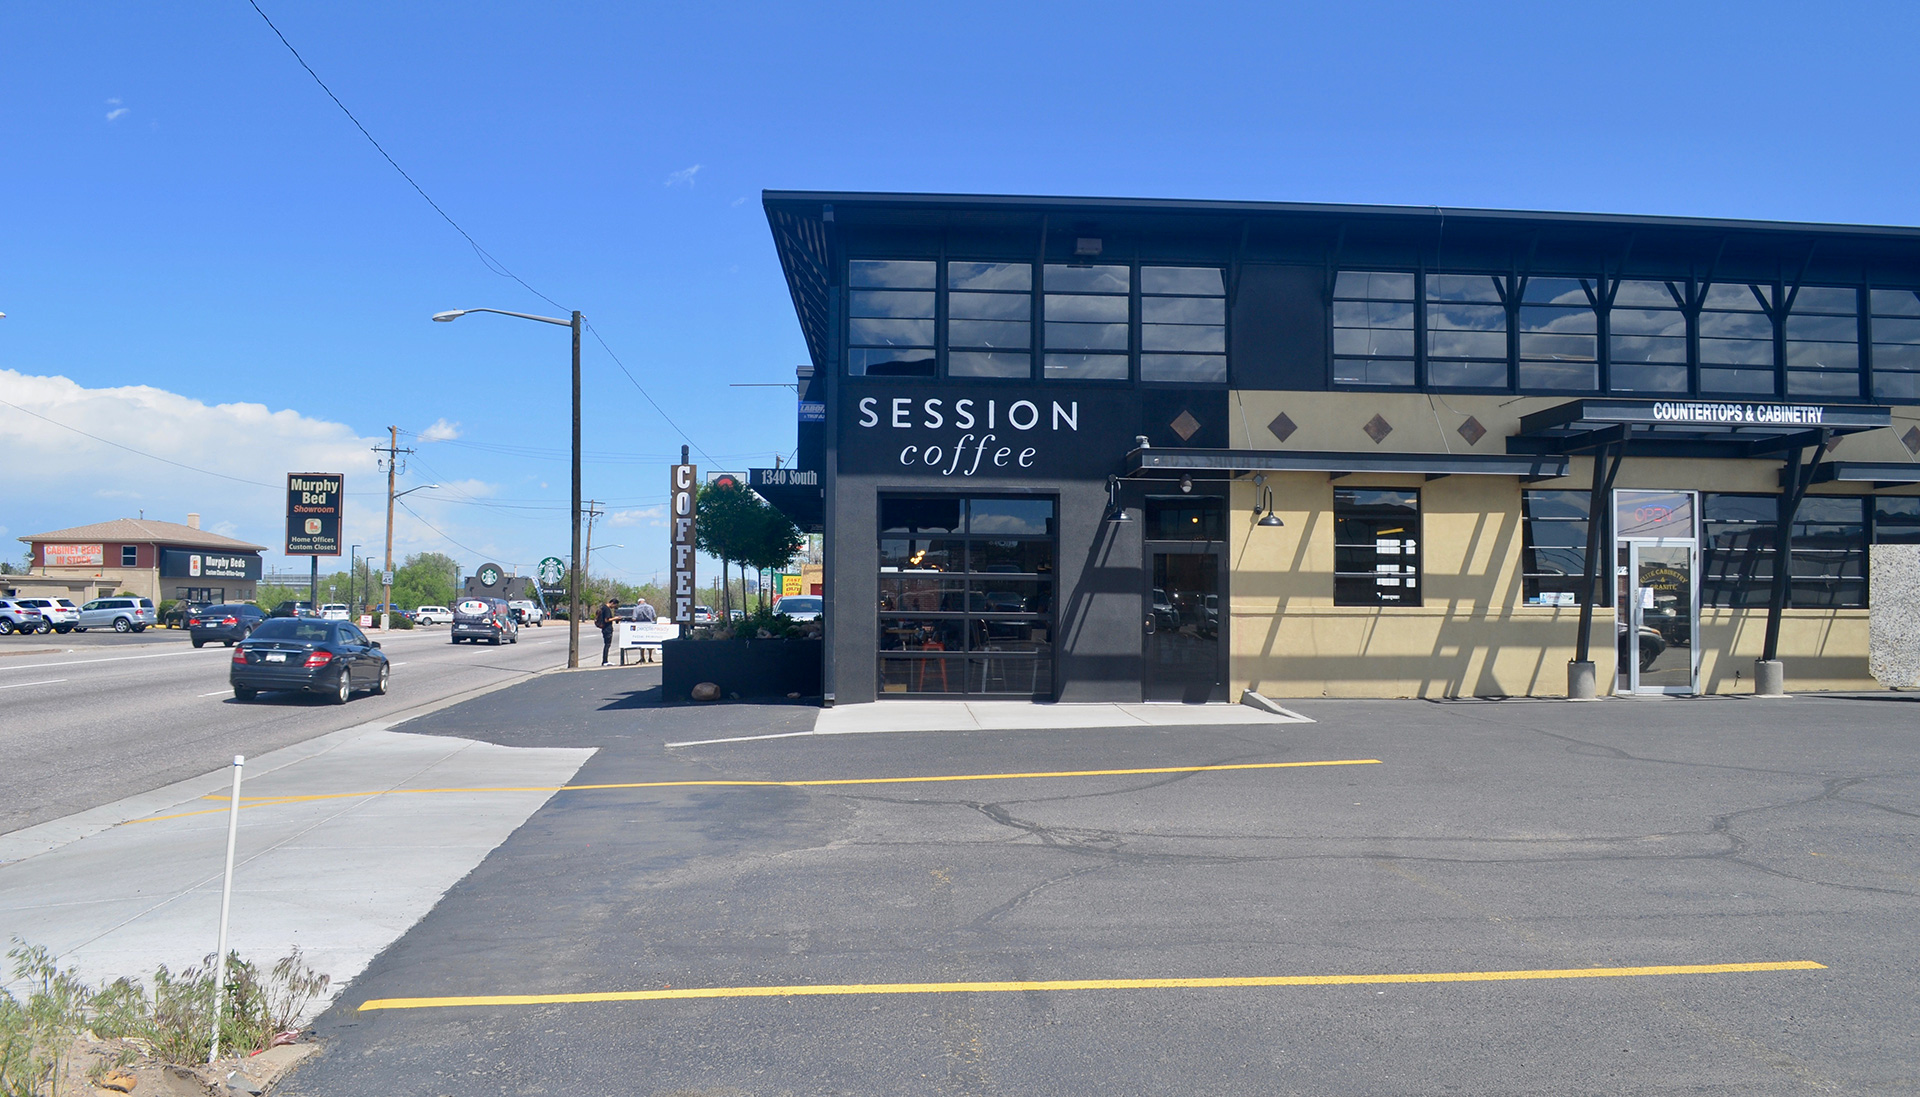 Denver's Coffee Scene Expands South With Session Coffee photo